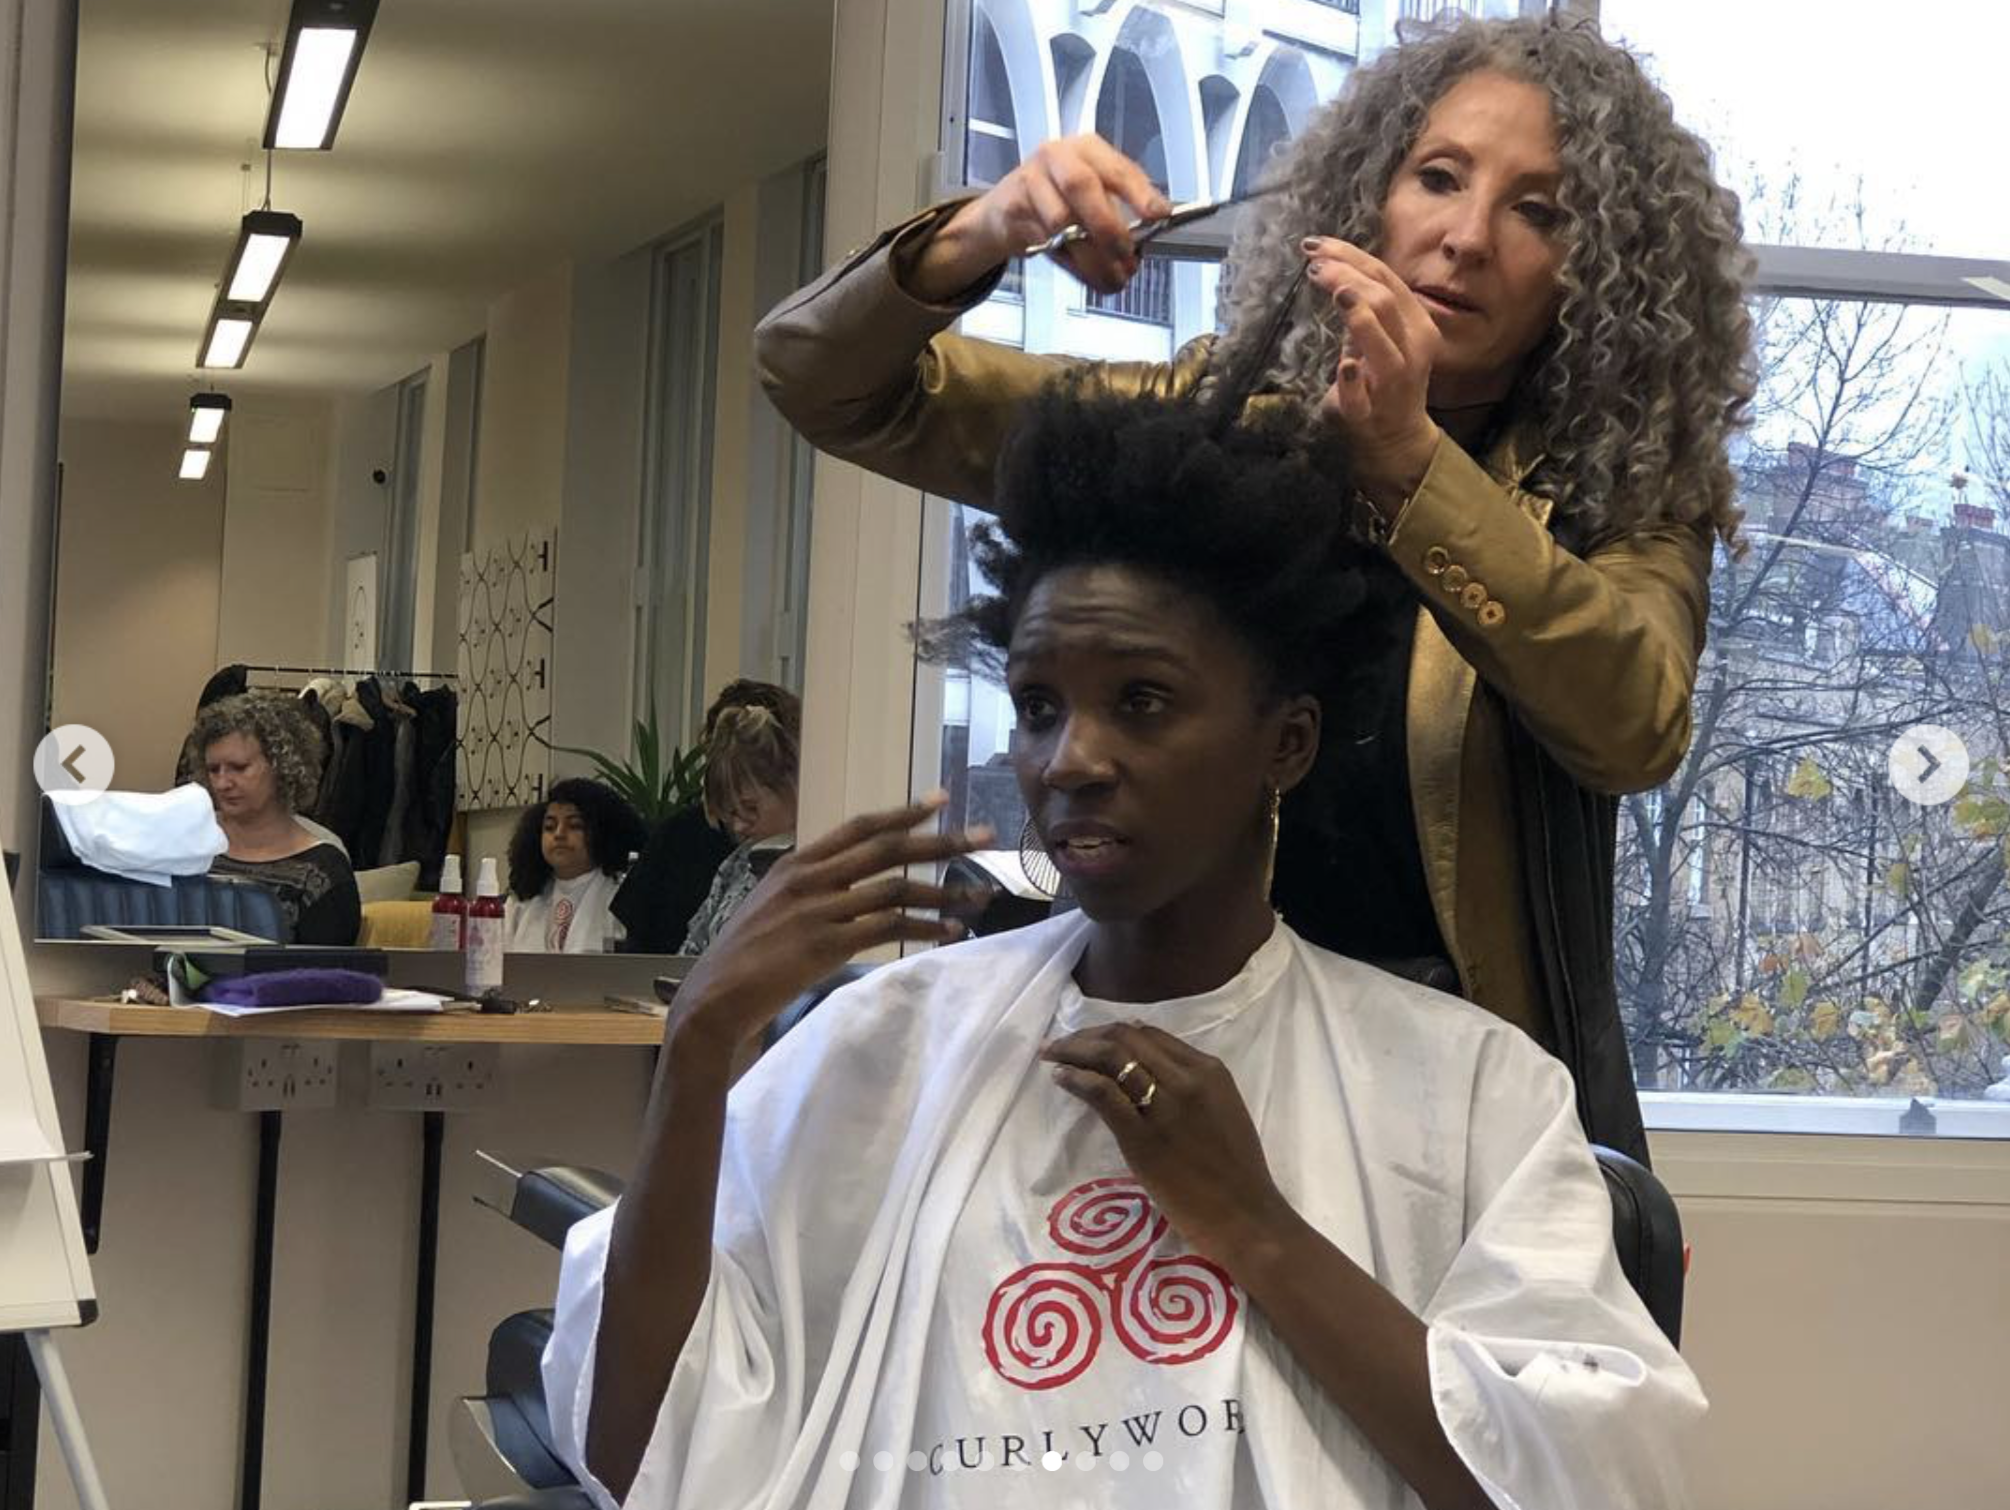 Lorraine Massey teaching her signature technique, Curl by Curl which was her ingenious invention!